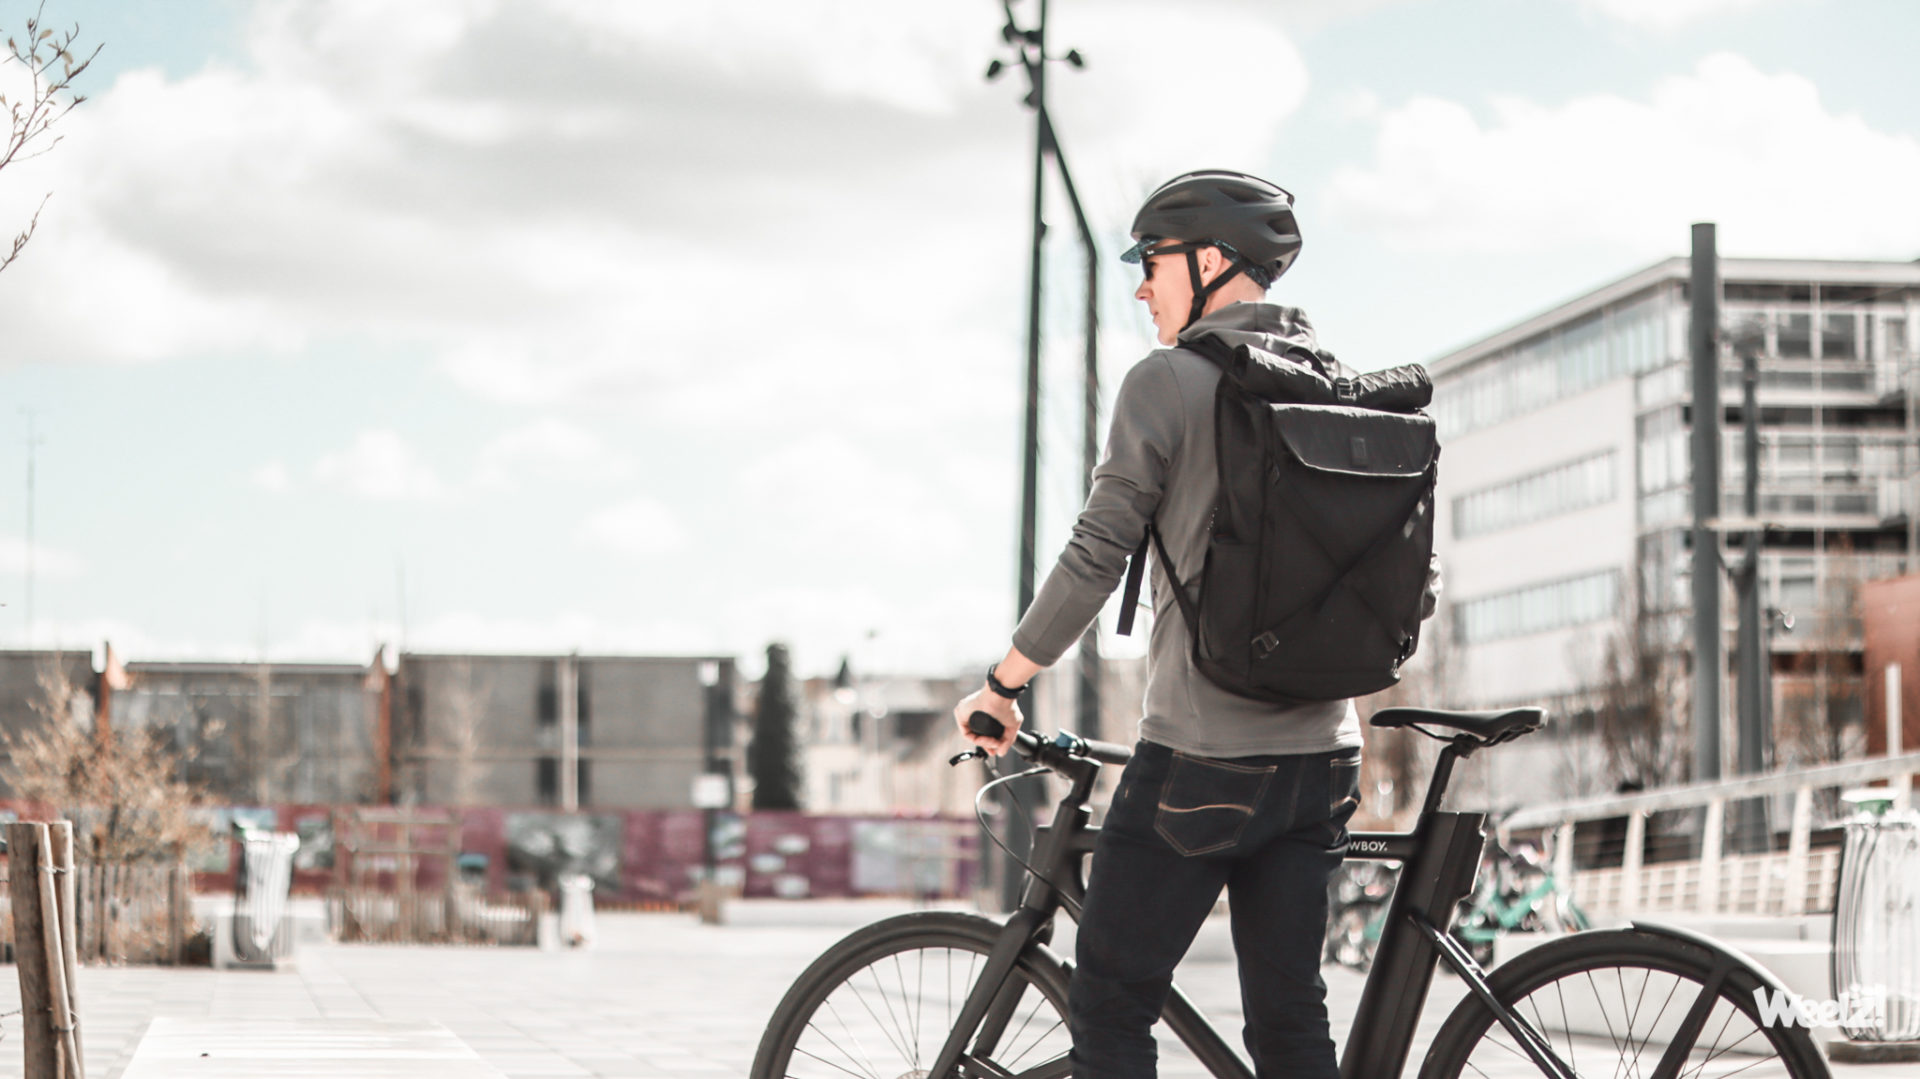 [Test] Sac à dos vélo Chrome Bravo 3.0, la vélo culture US sur votre dos